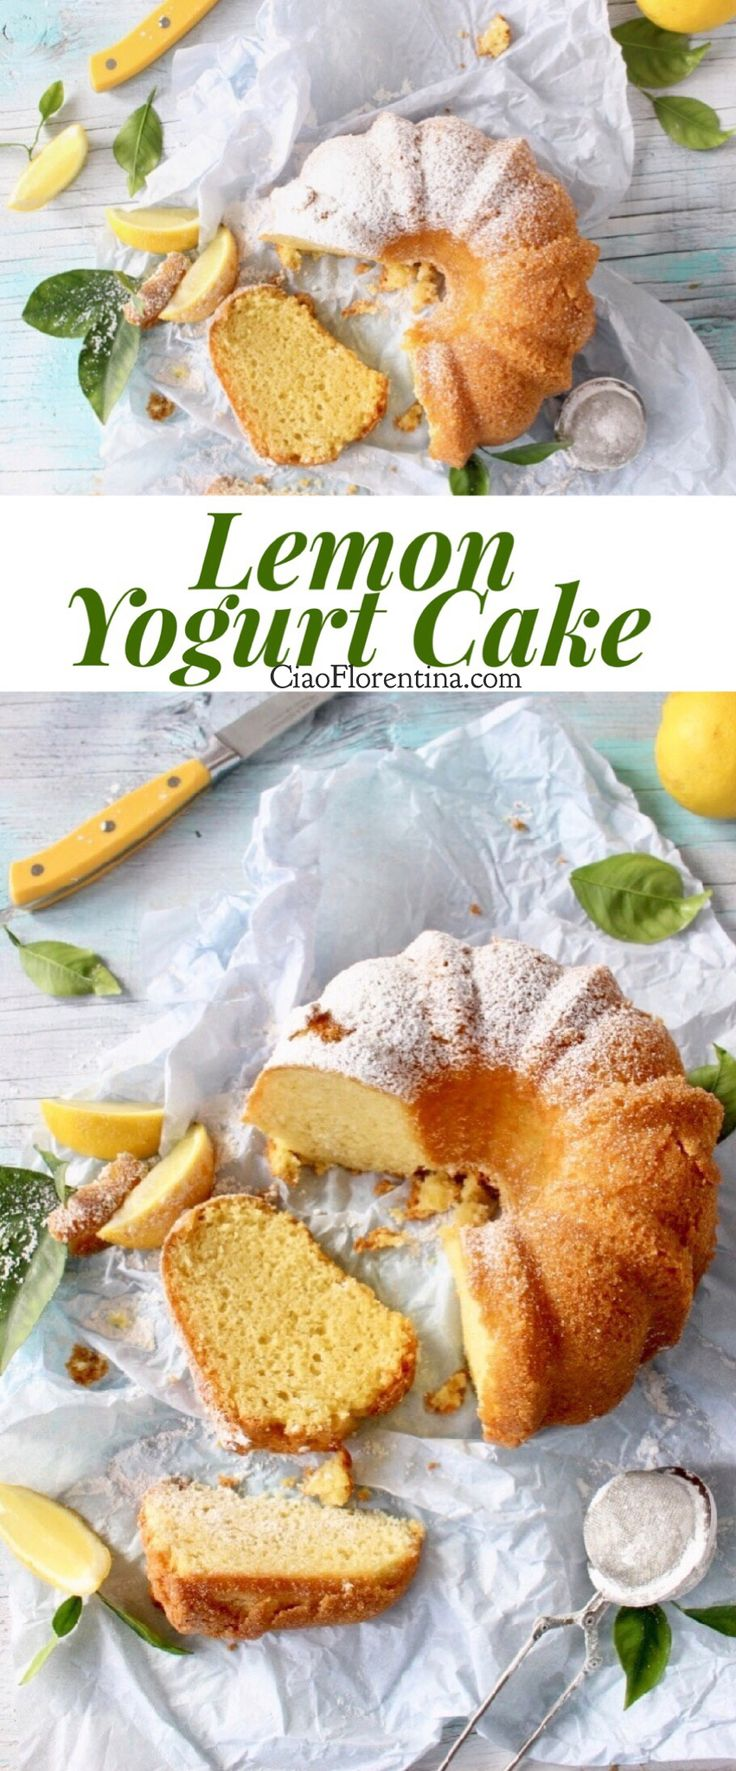 Lemon Greek Yogurt Cake Recipe with Vanilla and Olive Oil Dusted in Powdered Sugar | CiaoFlorentina.com @CiaoFlorentina